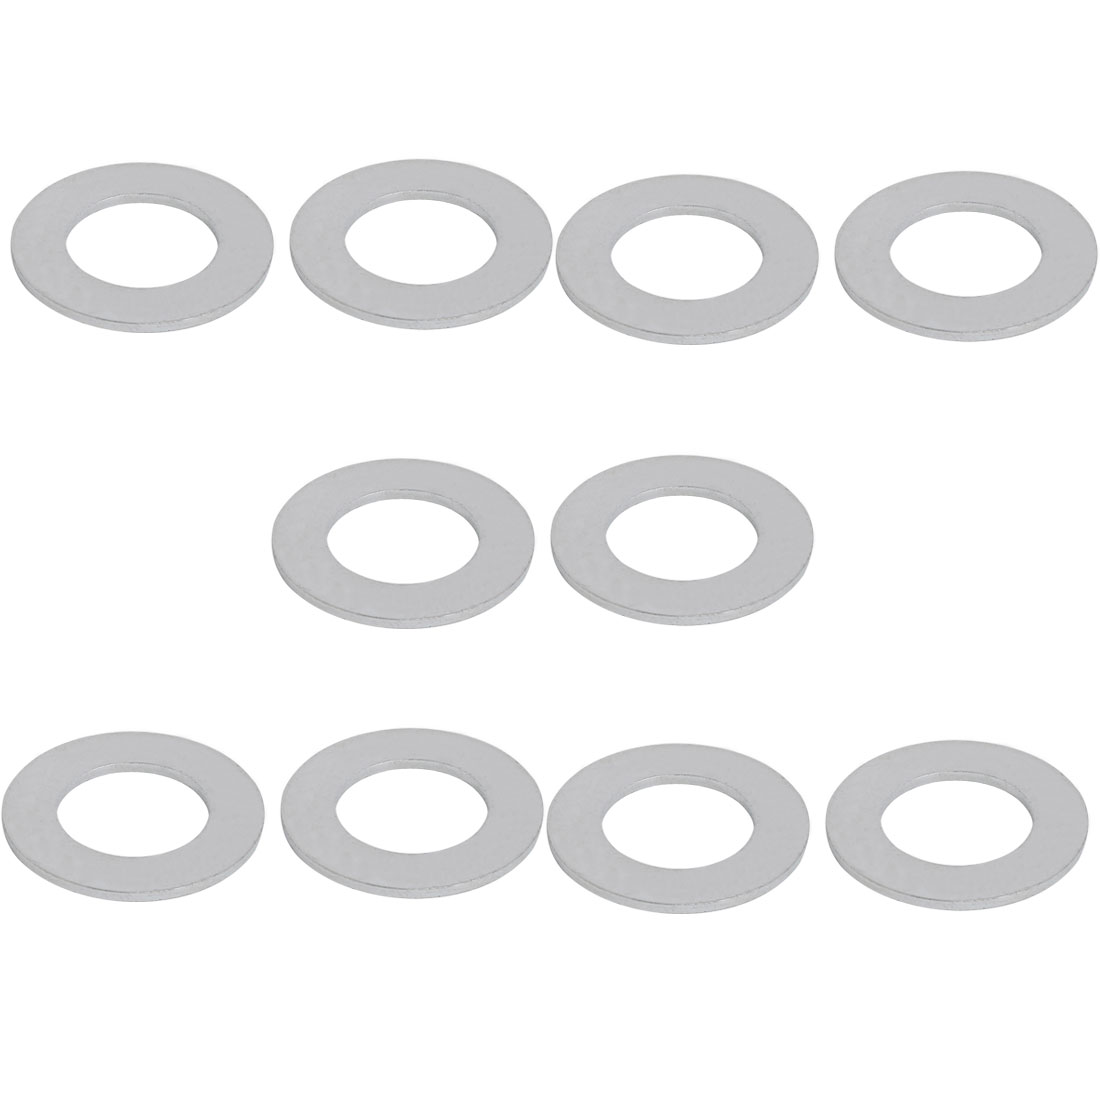 M20 Carbon Steel Zinc Plated Flat Pads Washer Gasket Spacer Silver Tone 10pcs